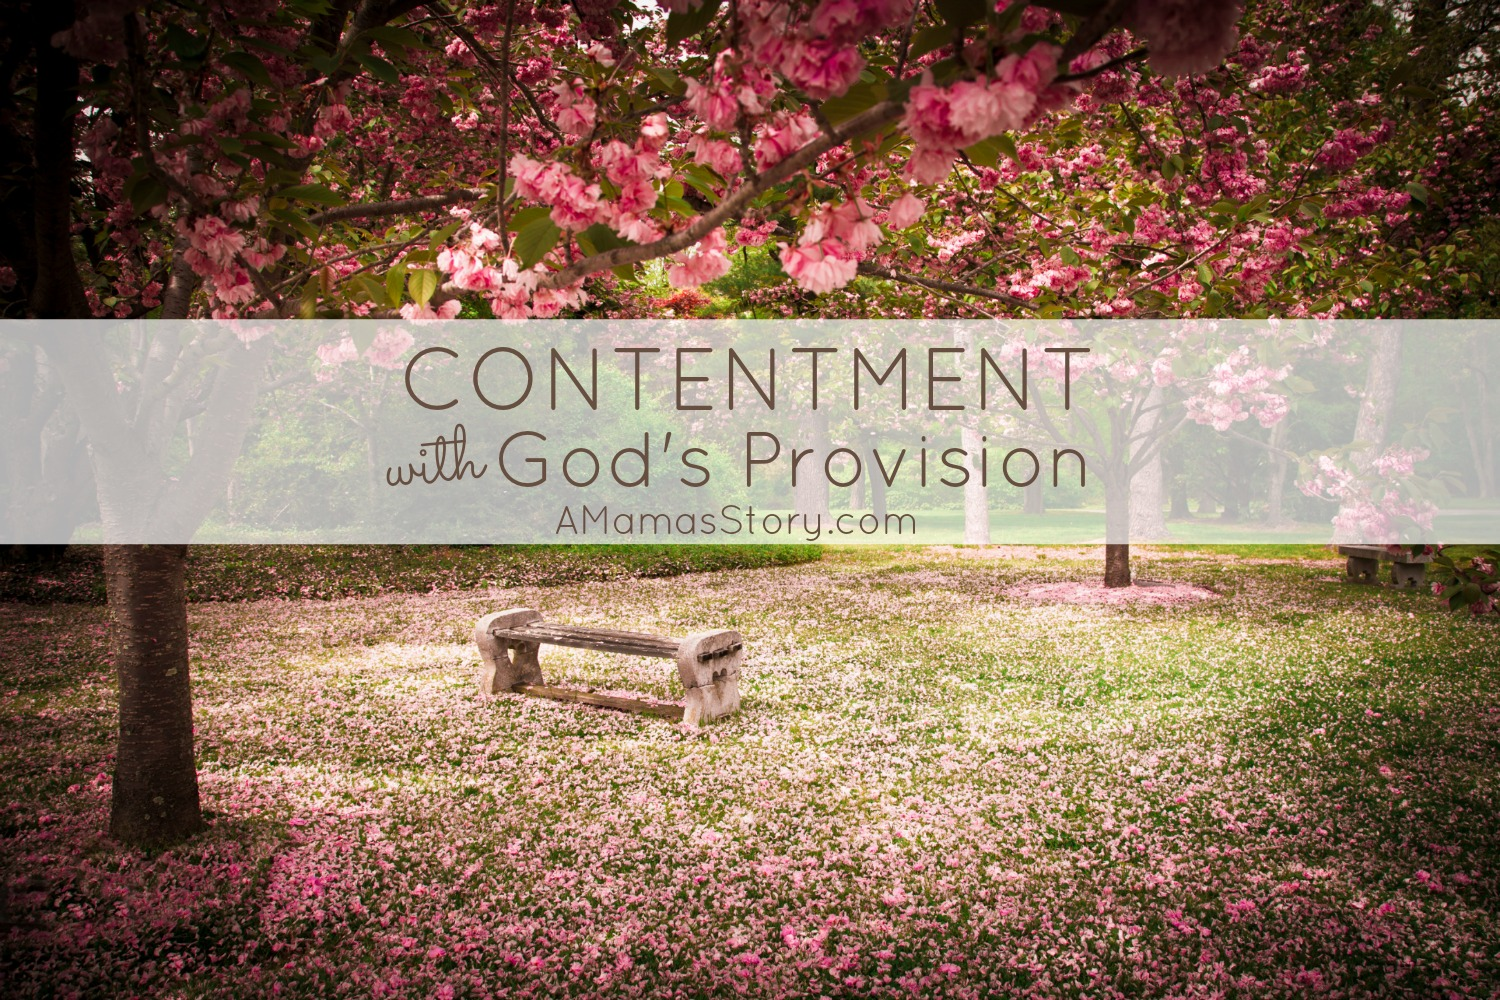 Contentment with God's Provision